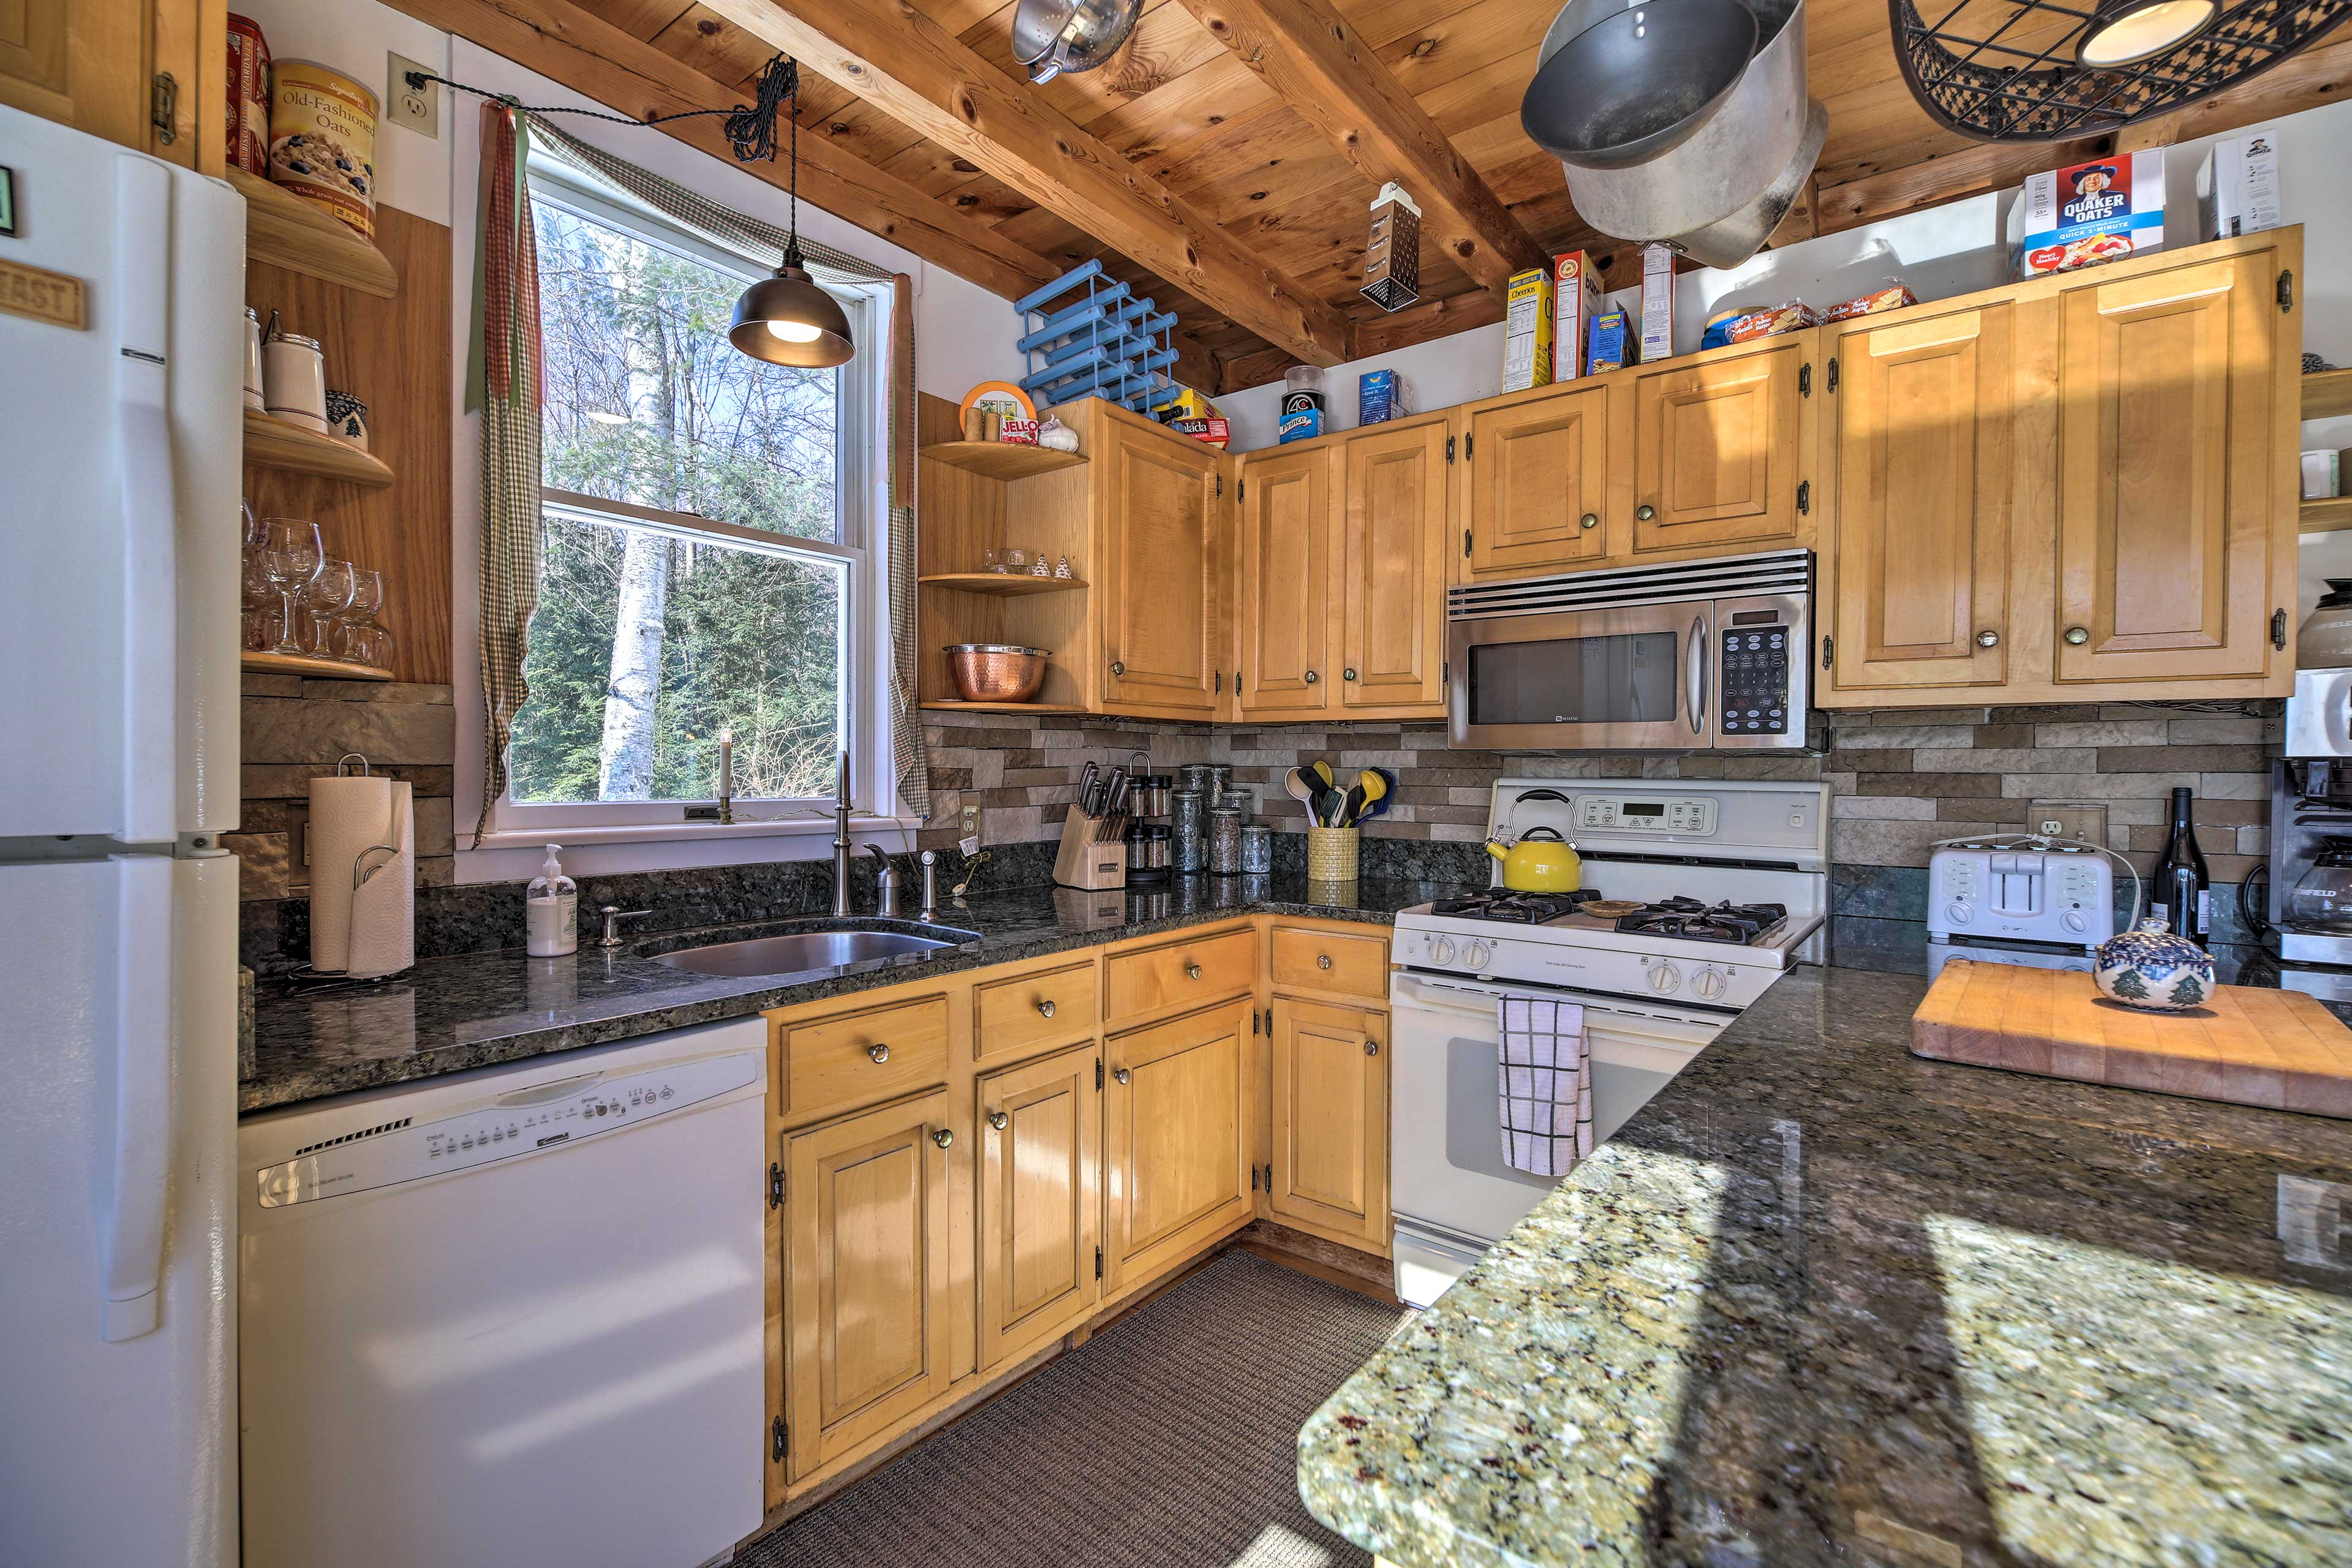 Spices, cookware and flatware complete the fully equipped kitchen.